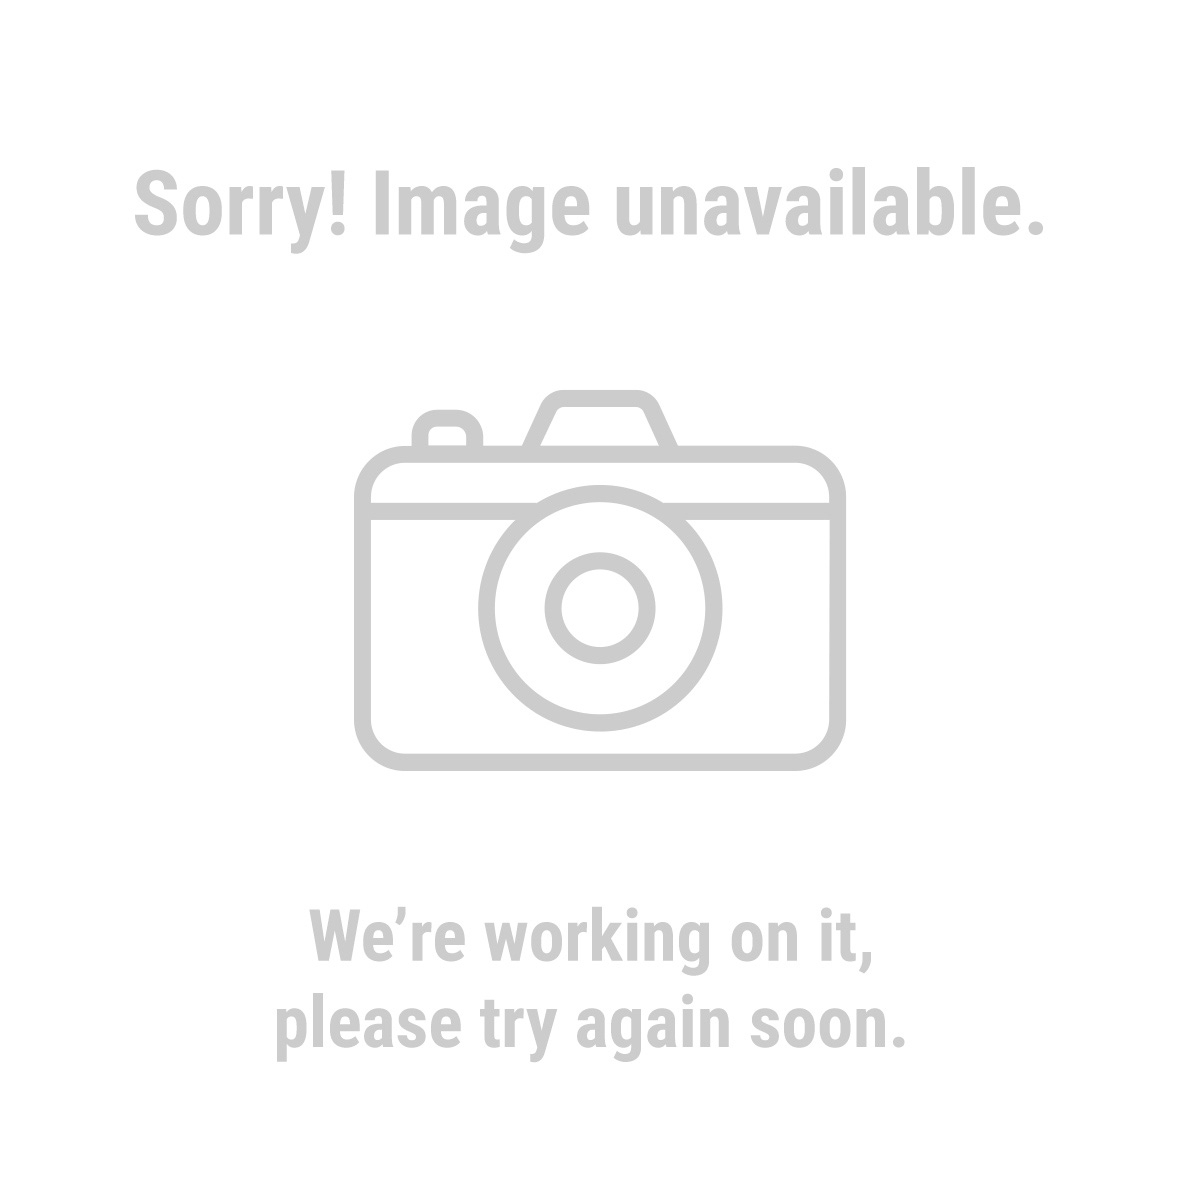 U.S. General 47844 Folding Clamping Workbench with Movable Pegs